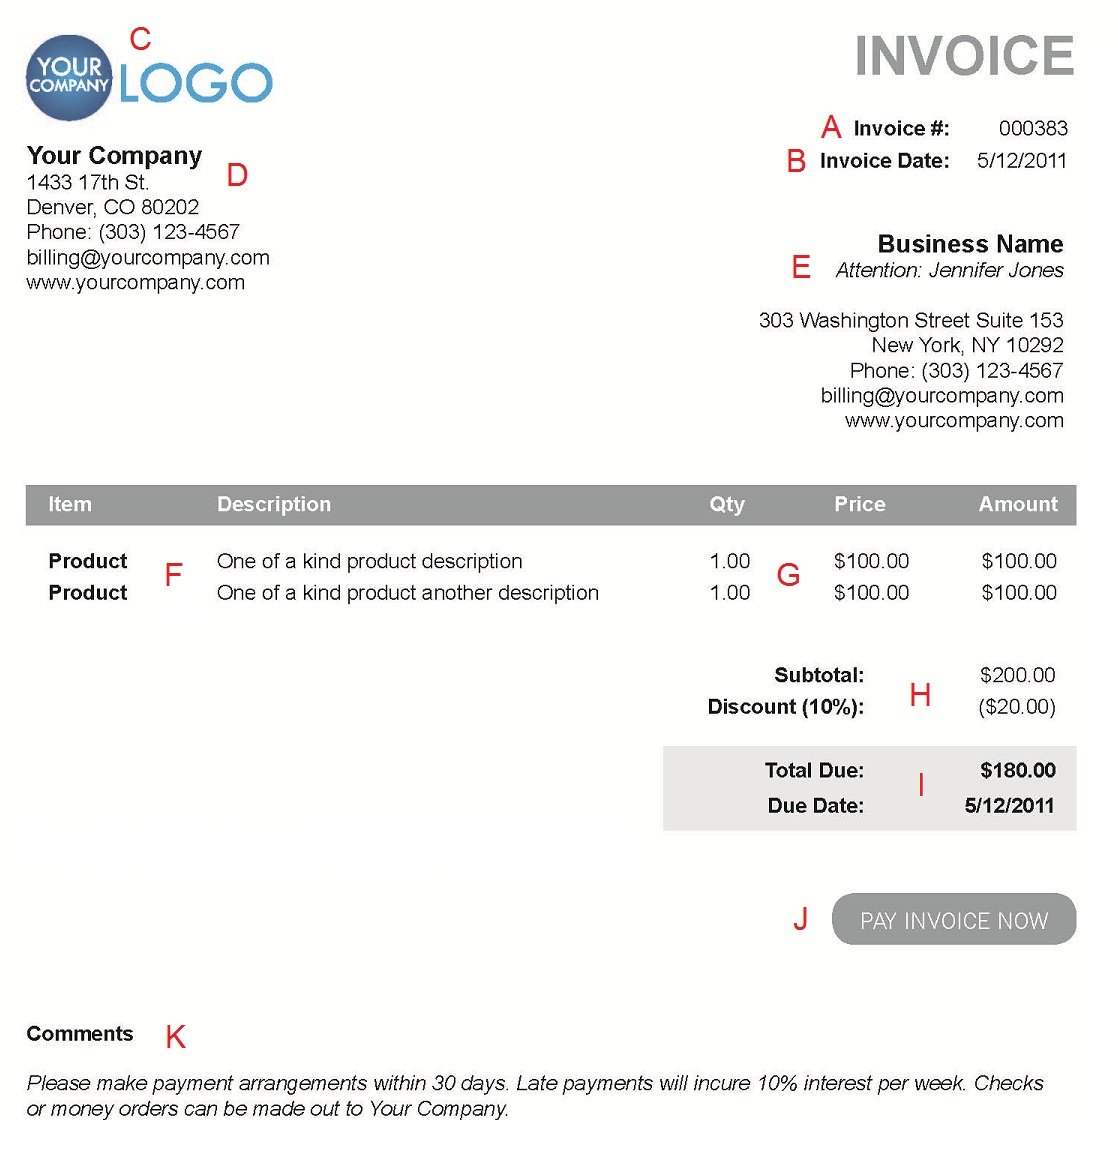 Coolmathgamesus  Unusual The  Different Sections Of An Electronic Payment Invoice With Excellent A  With Amusing Magento Invoice Template Also Make An Invoice In Word In Addition Nissan Invoice Price And Xero Invoice Templates As Well As Invoice Copies Additionally Custom Invoices Online From Paysimplecom With Coolmathgamesus  Excellent The  Different Sections Of An Electronic Payment Invoice With Amusing A  And Unusual Magento Invoice Template Also Make An Invoice In Word In Addition Nissan Invoice Price From Paysimplecom